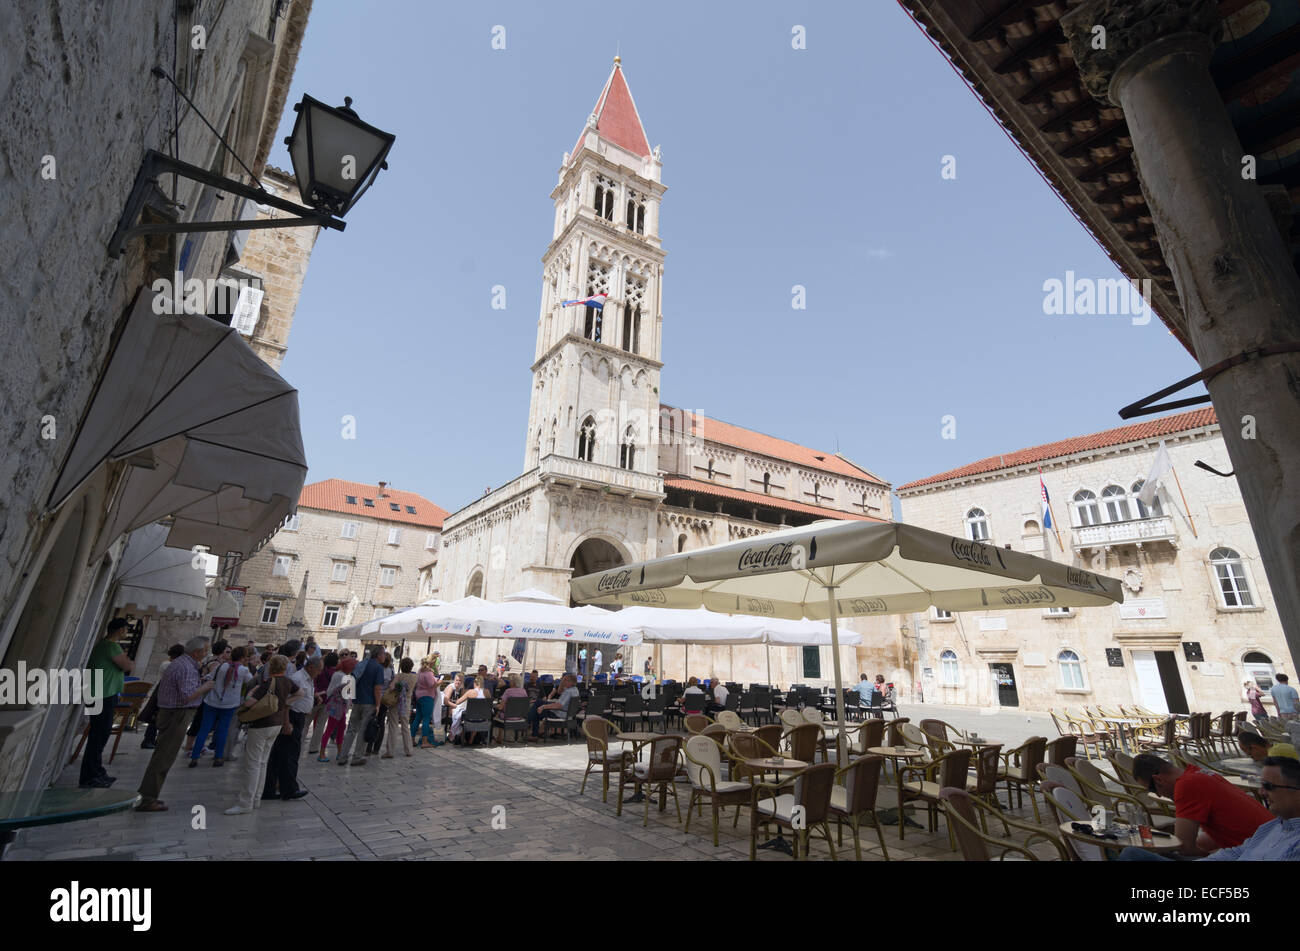 TROGIR, CROATIA - MAY 19, 2013: people are taking a brake in one of the street cafe in Trogir. On May 19, 2013, - Stock Image